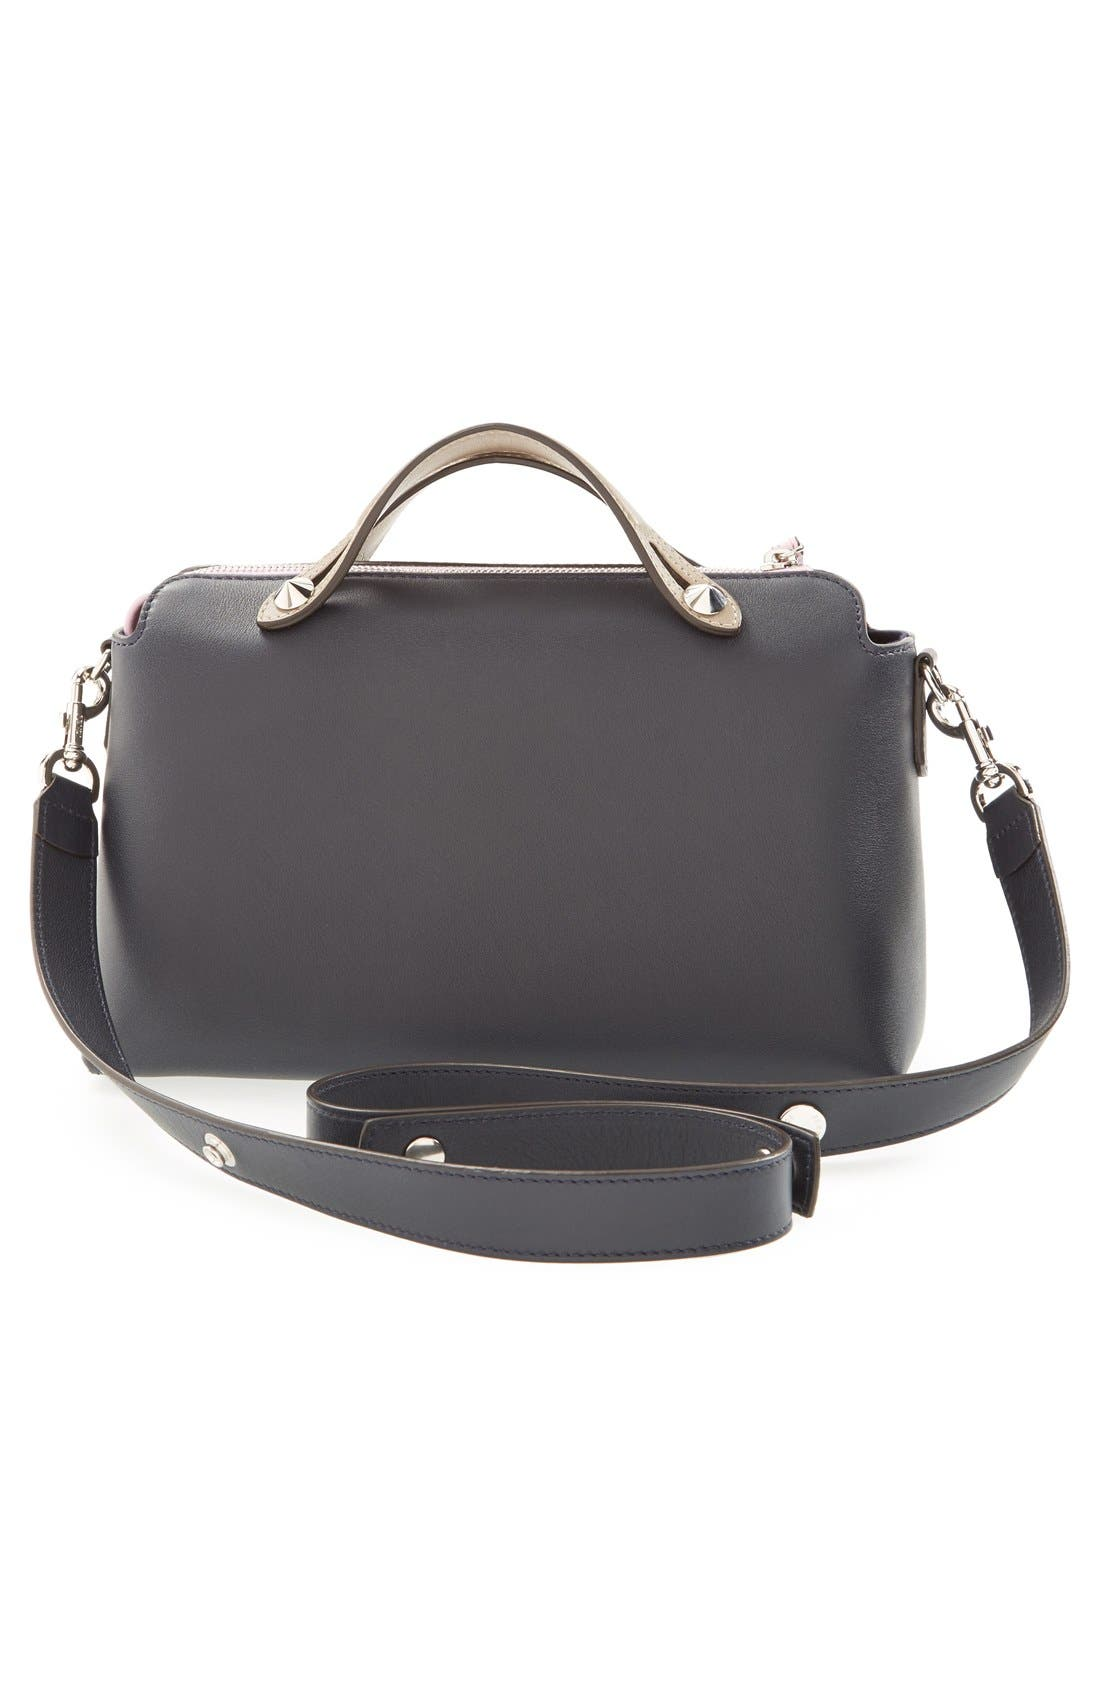 Alternate Image 3  - Fendi 'Small By the Way' Colorblock Leather Shoulder Bag